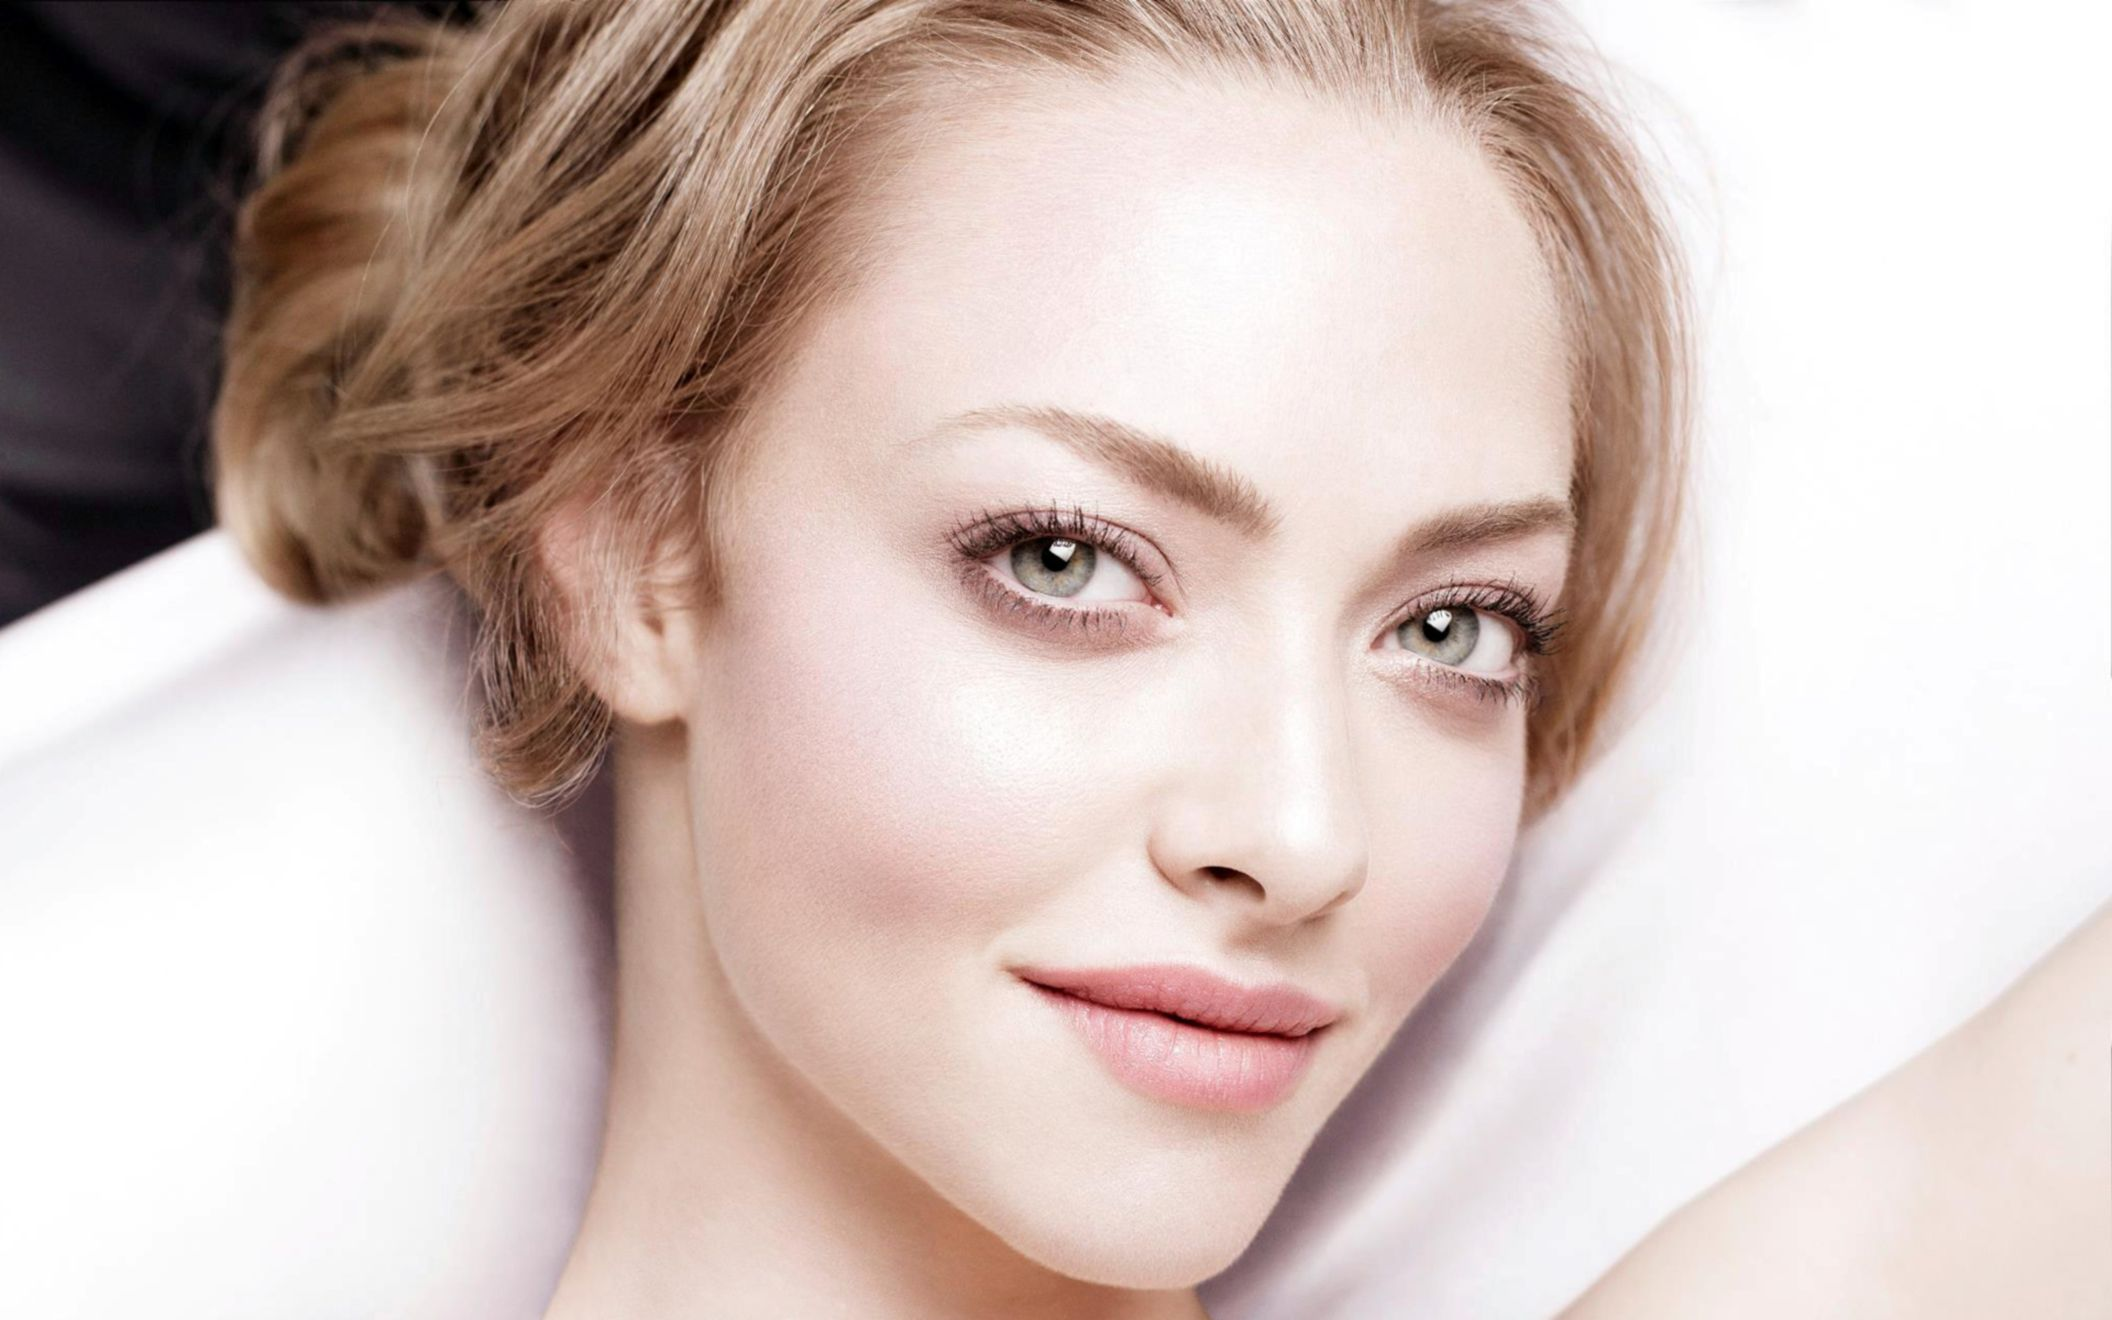 Download free HD Amanda Seyfried 2 Wide Wallpaper, image